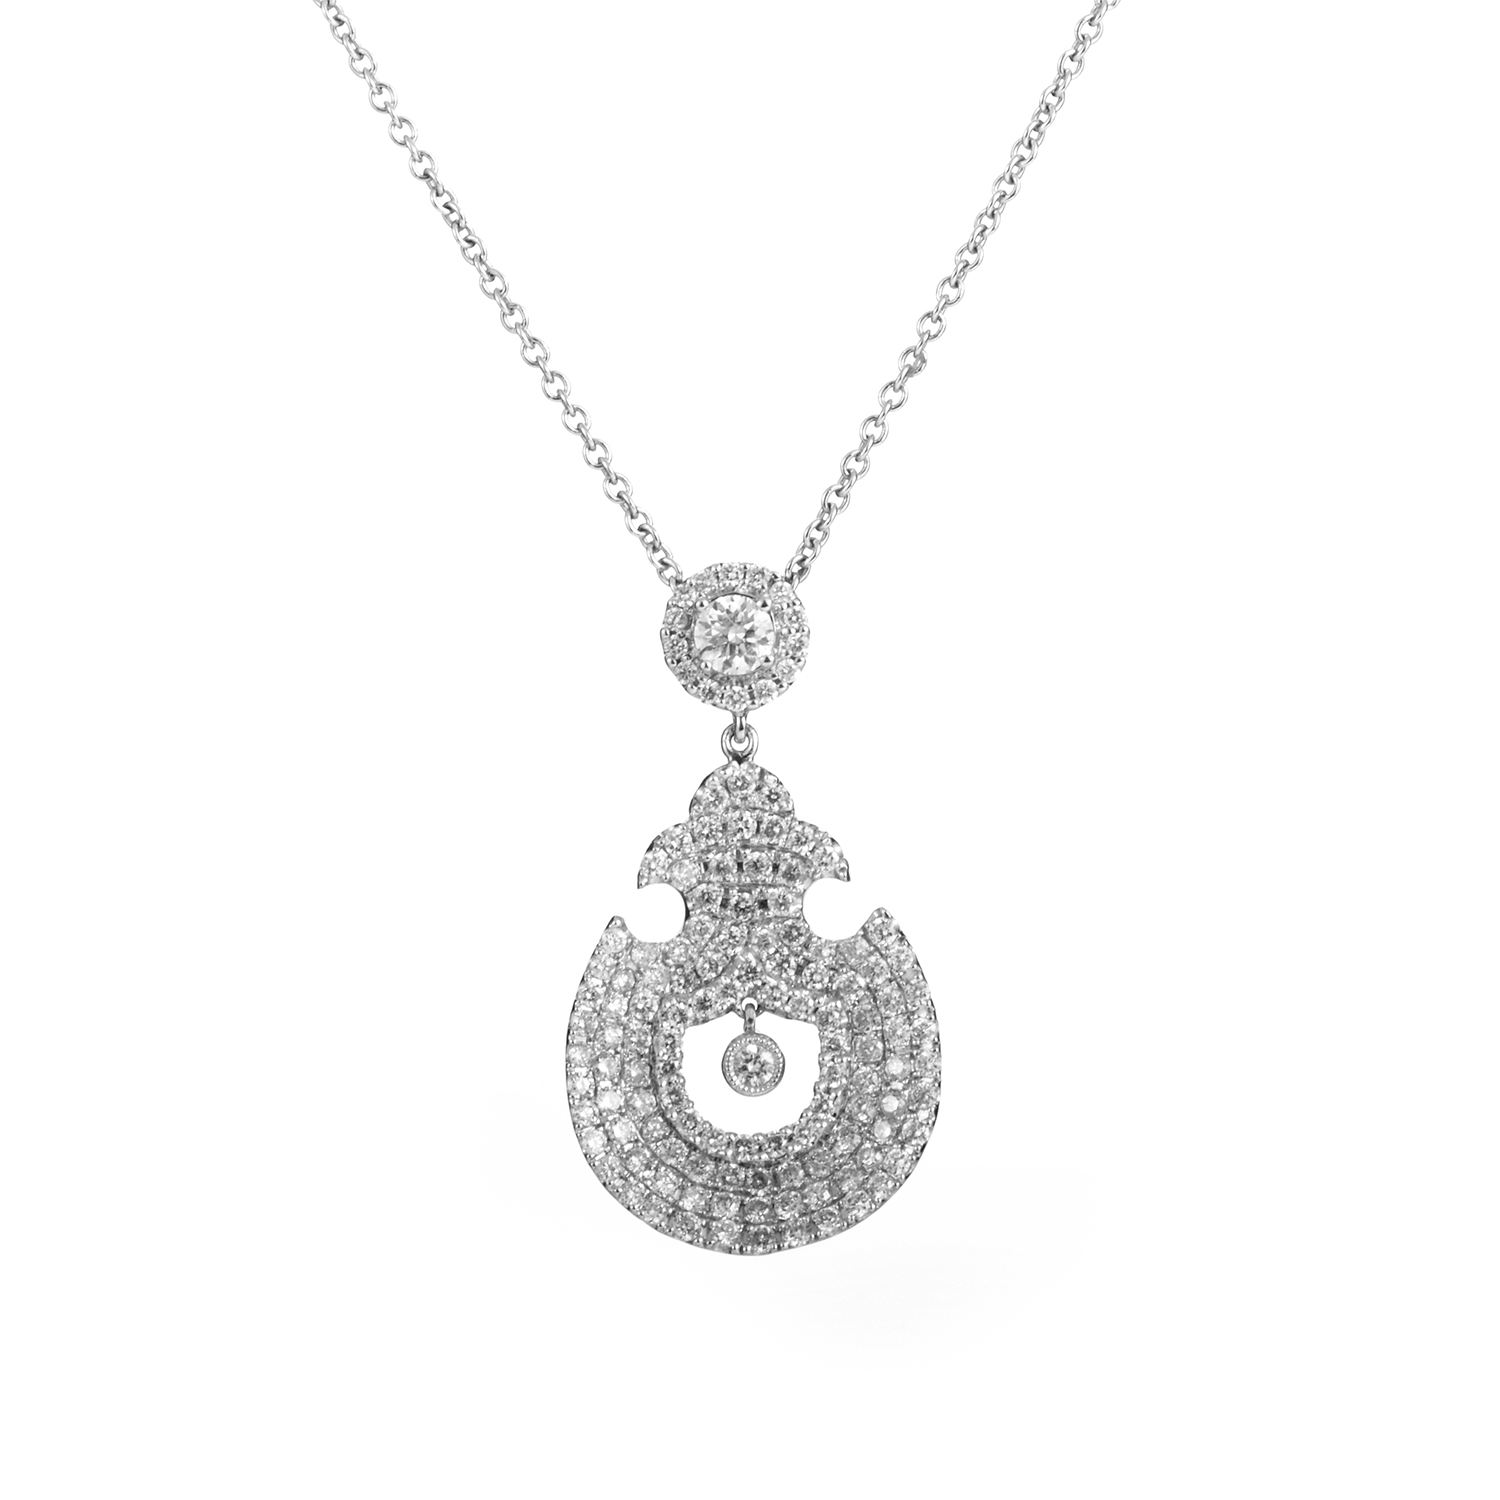 18K White Gold Diamond Pendant Necklace KE97DPMSBZ